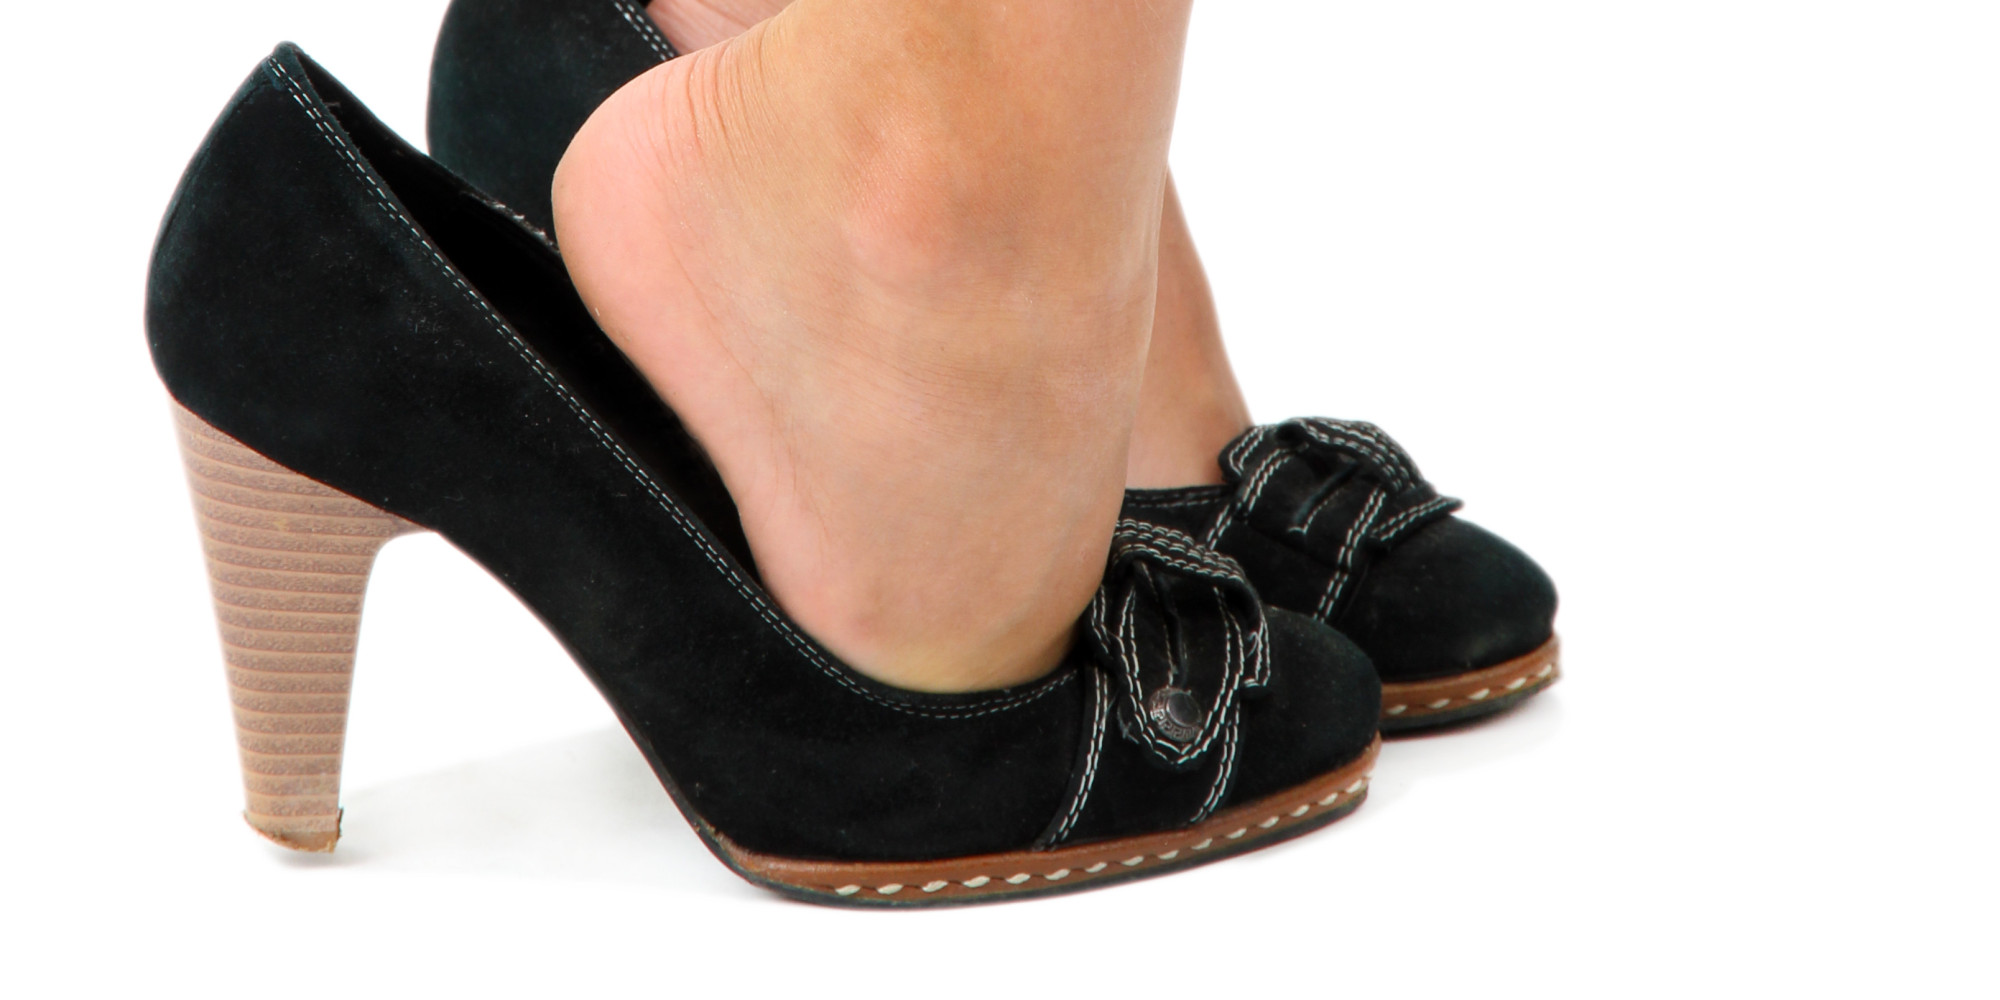 My feet match my petite body...they're petite too. I wear a size 4 in womens, which makes shoe